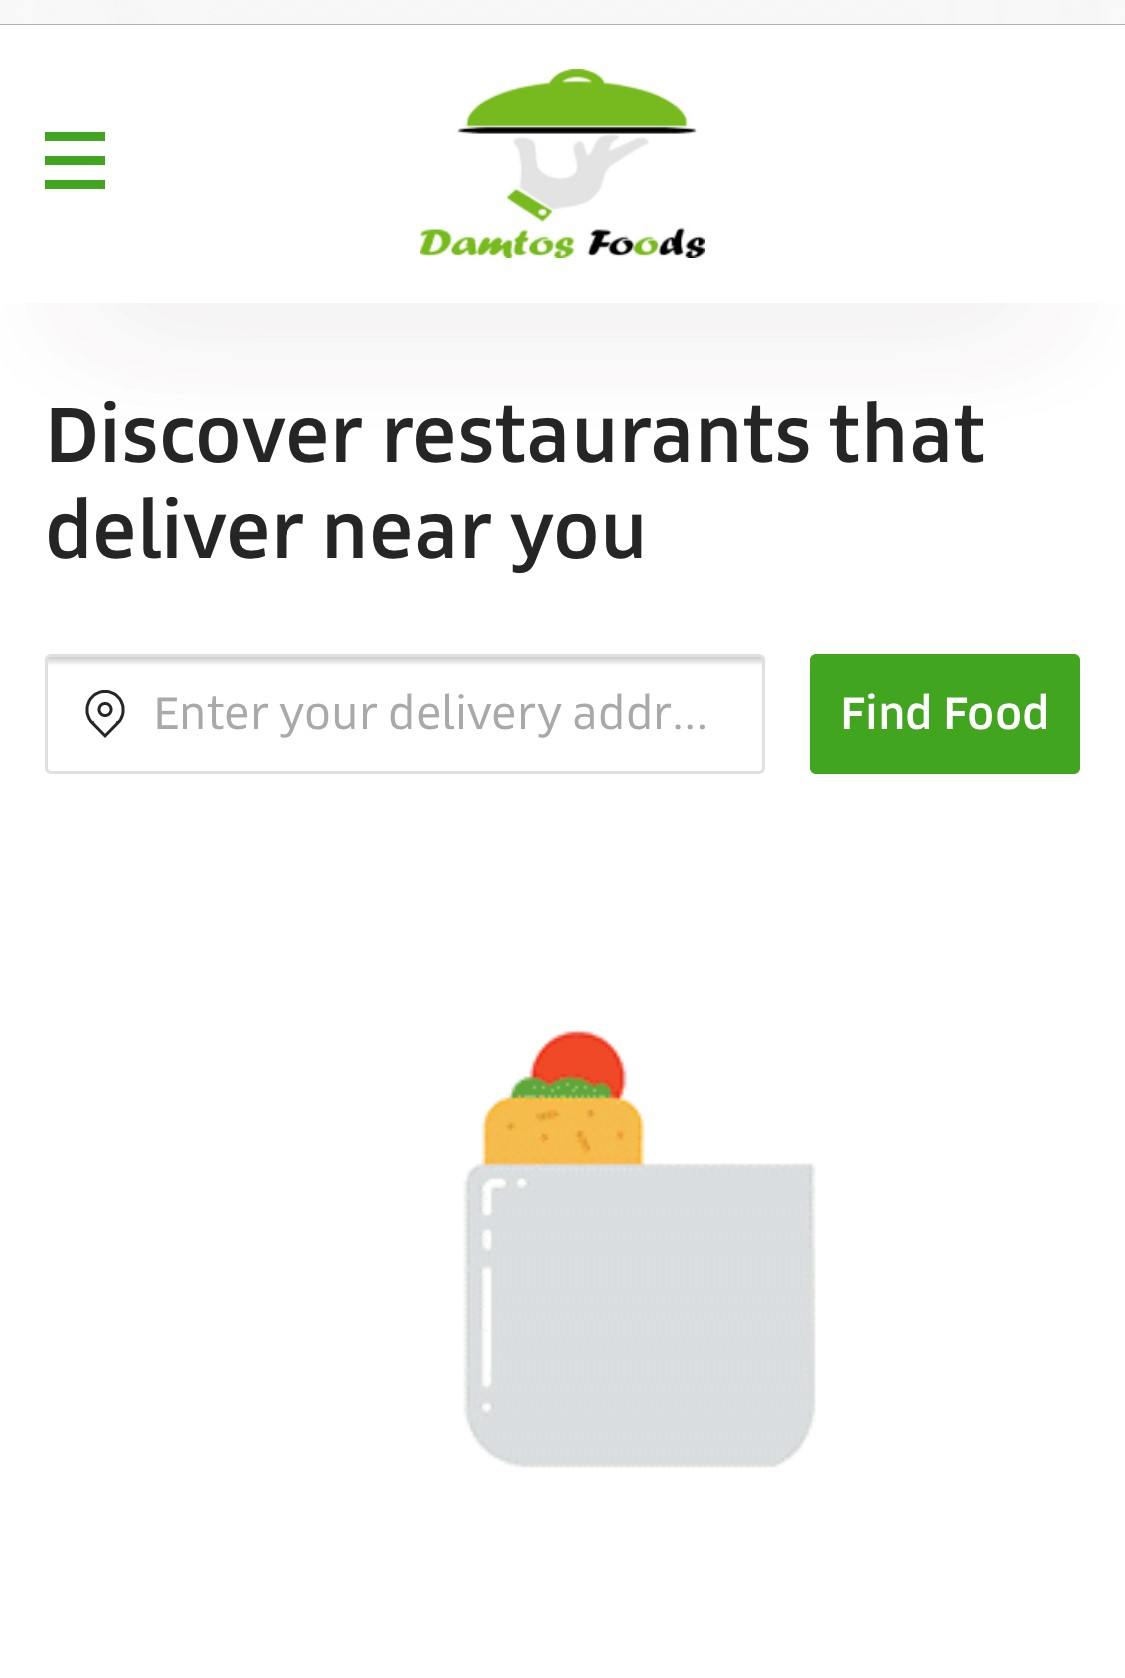 Damtos foods - Food Delivery